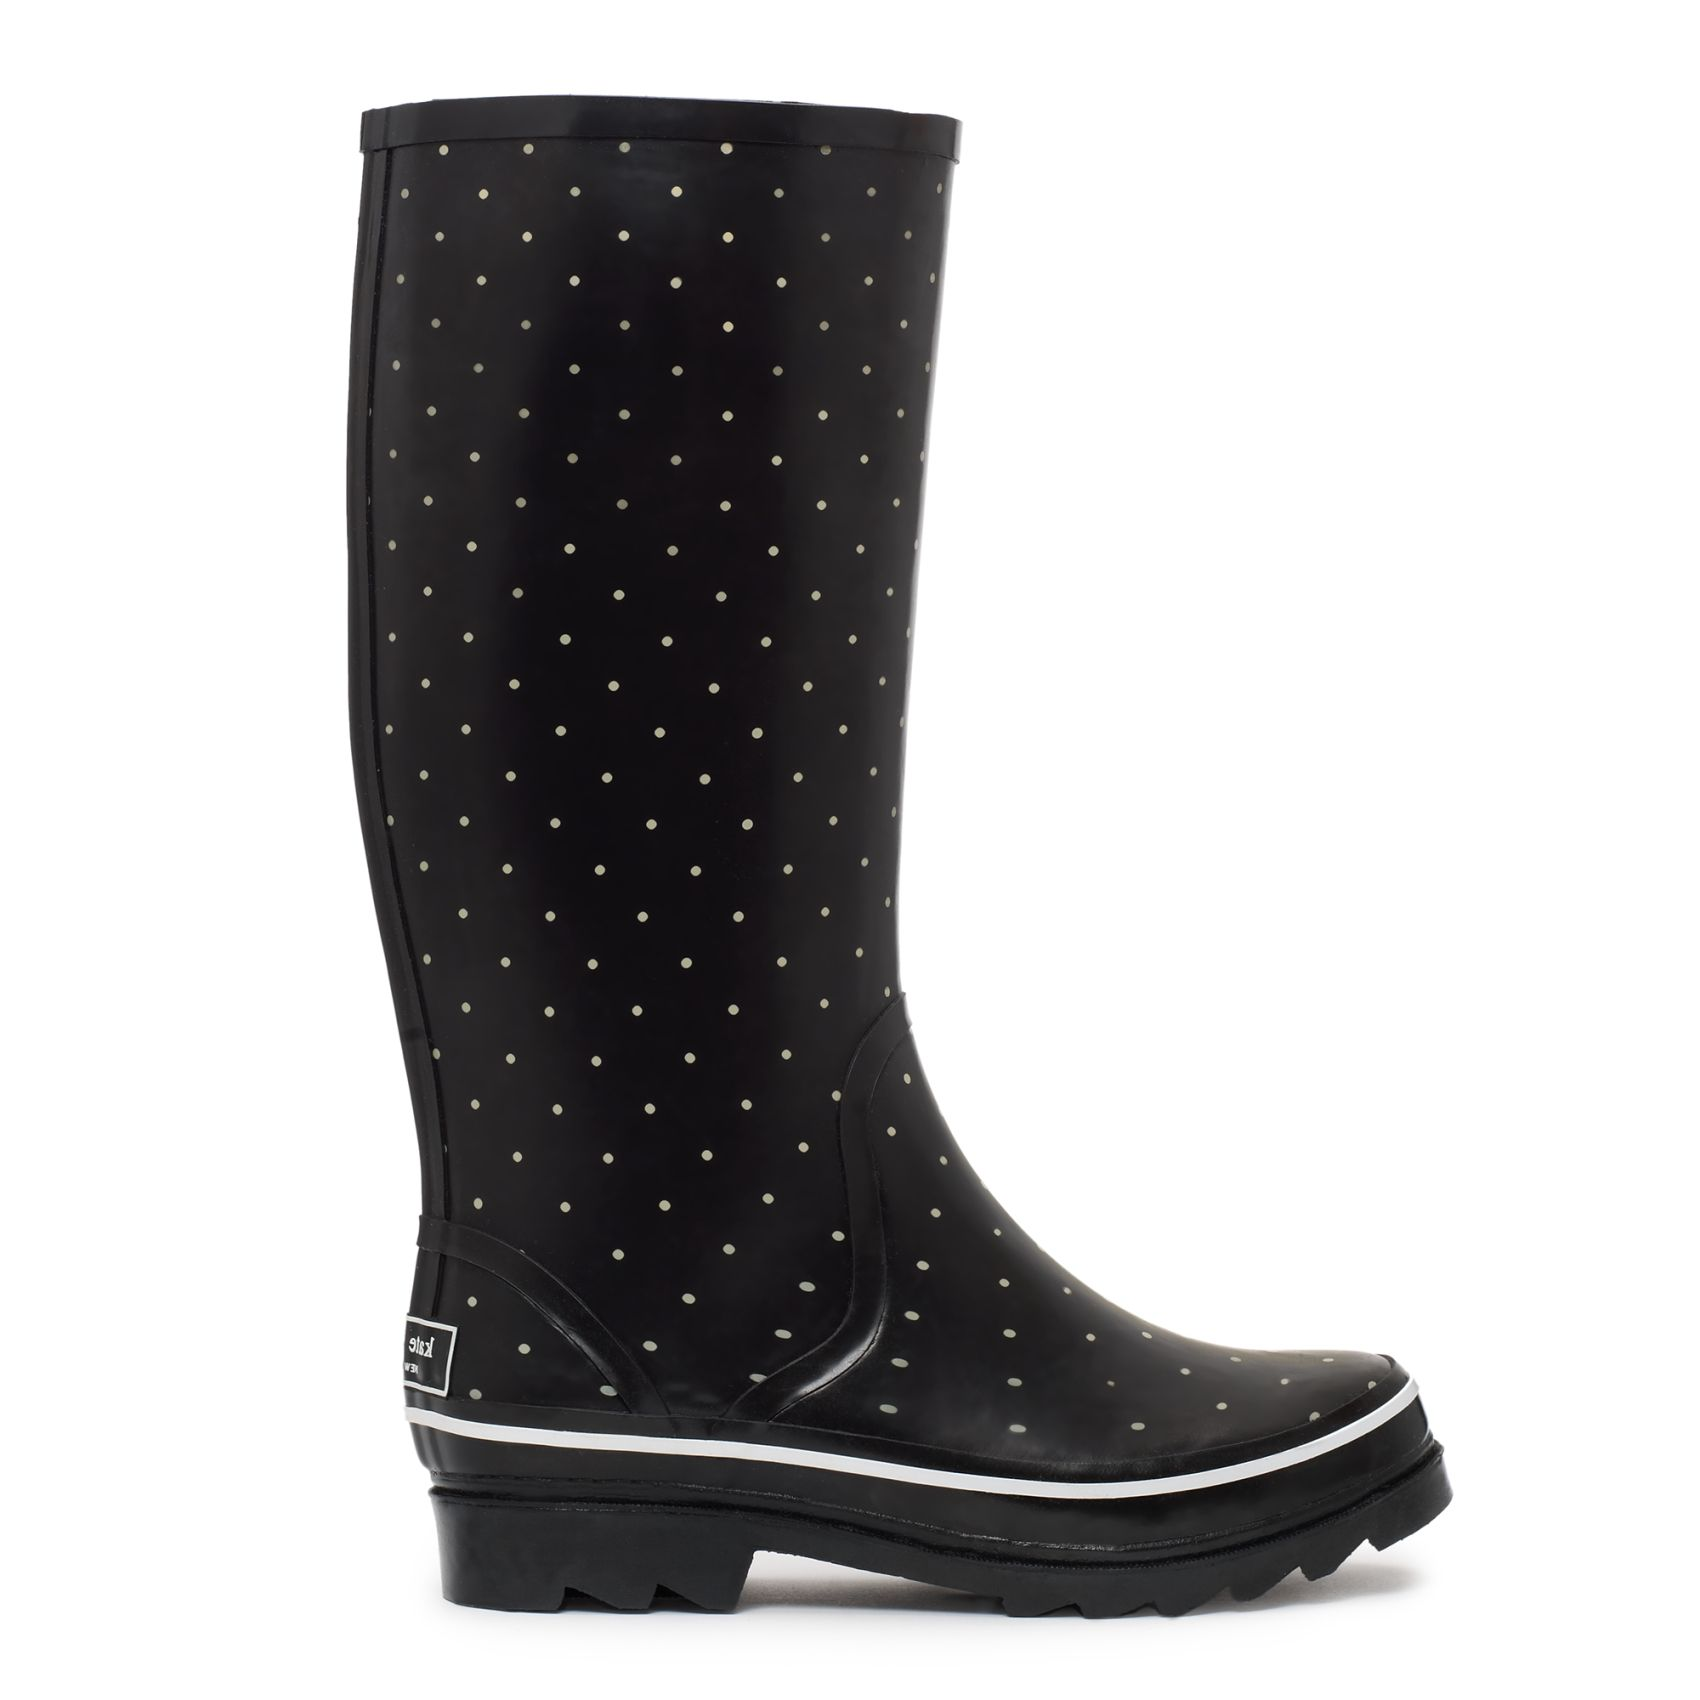 fefd05989c65 polka dot rain boots from kate spade new york. i wish i had these this  morning.